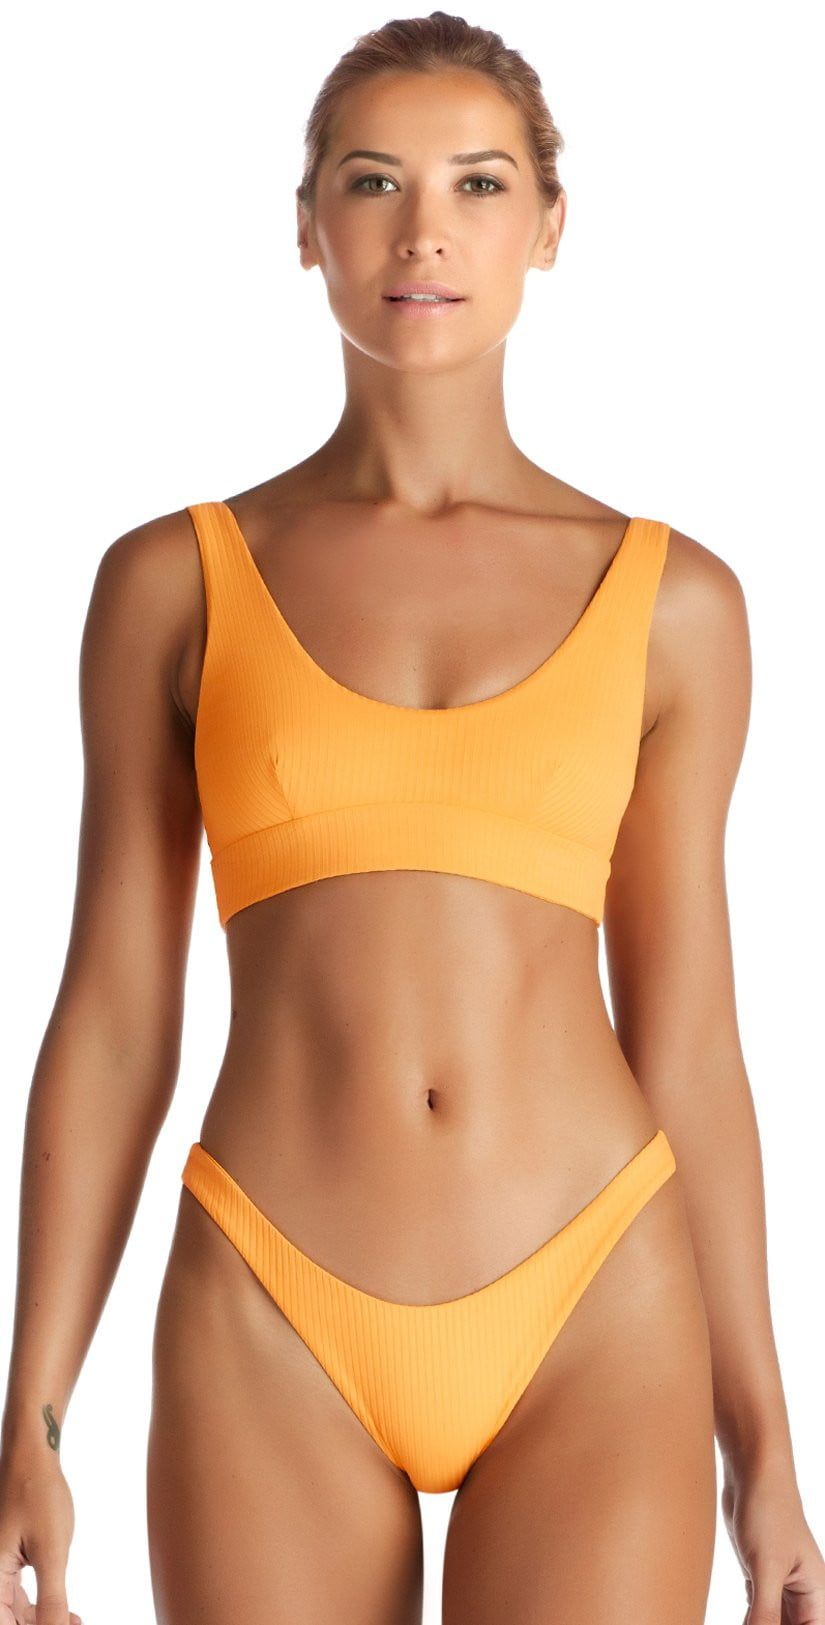 Vitamin A Sienna EcoRib Bikini Tank Top in Sunflower 809T SRB: